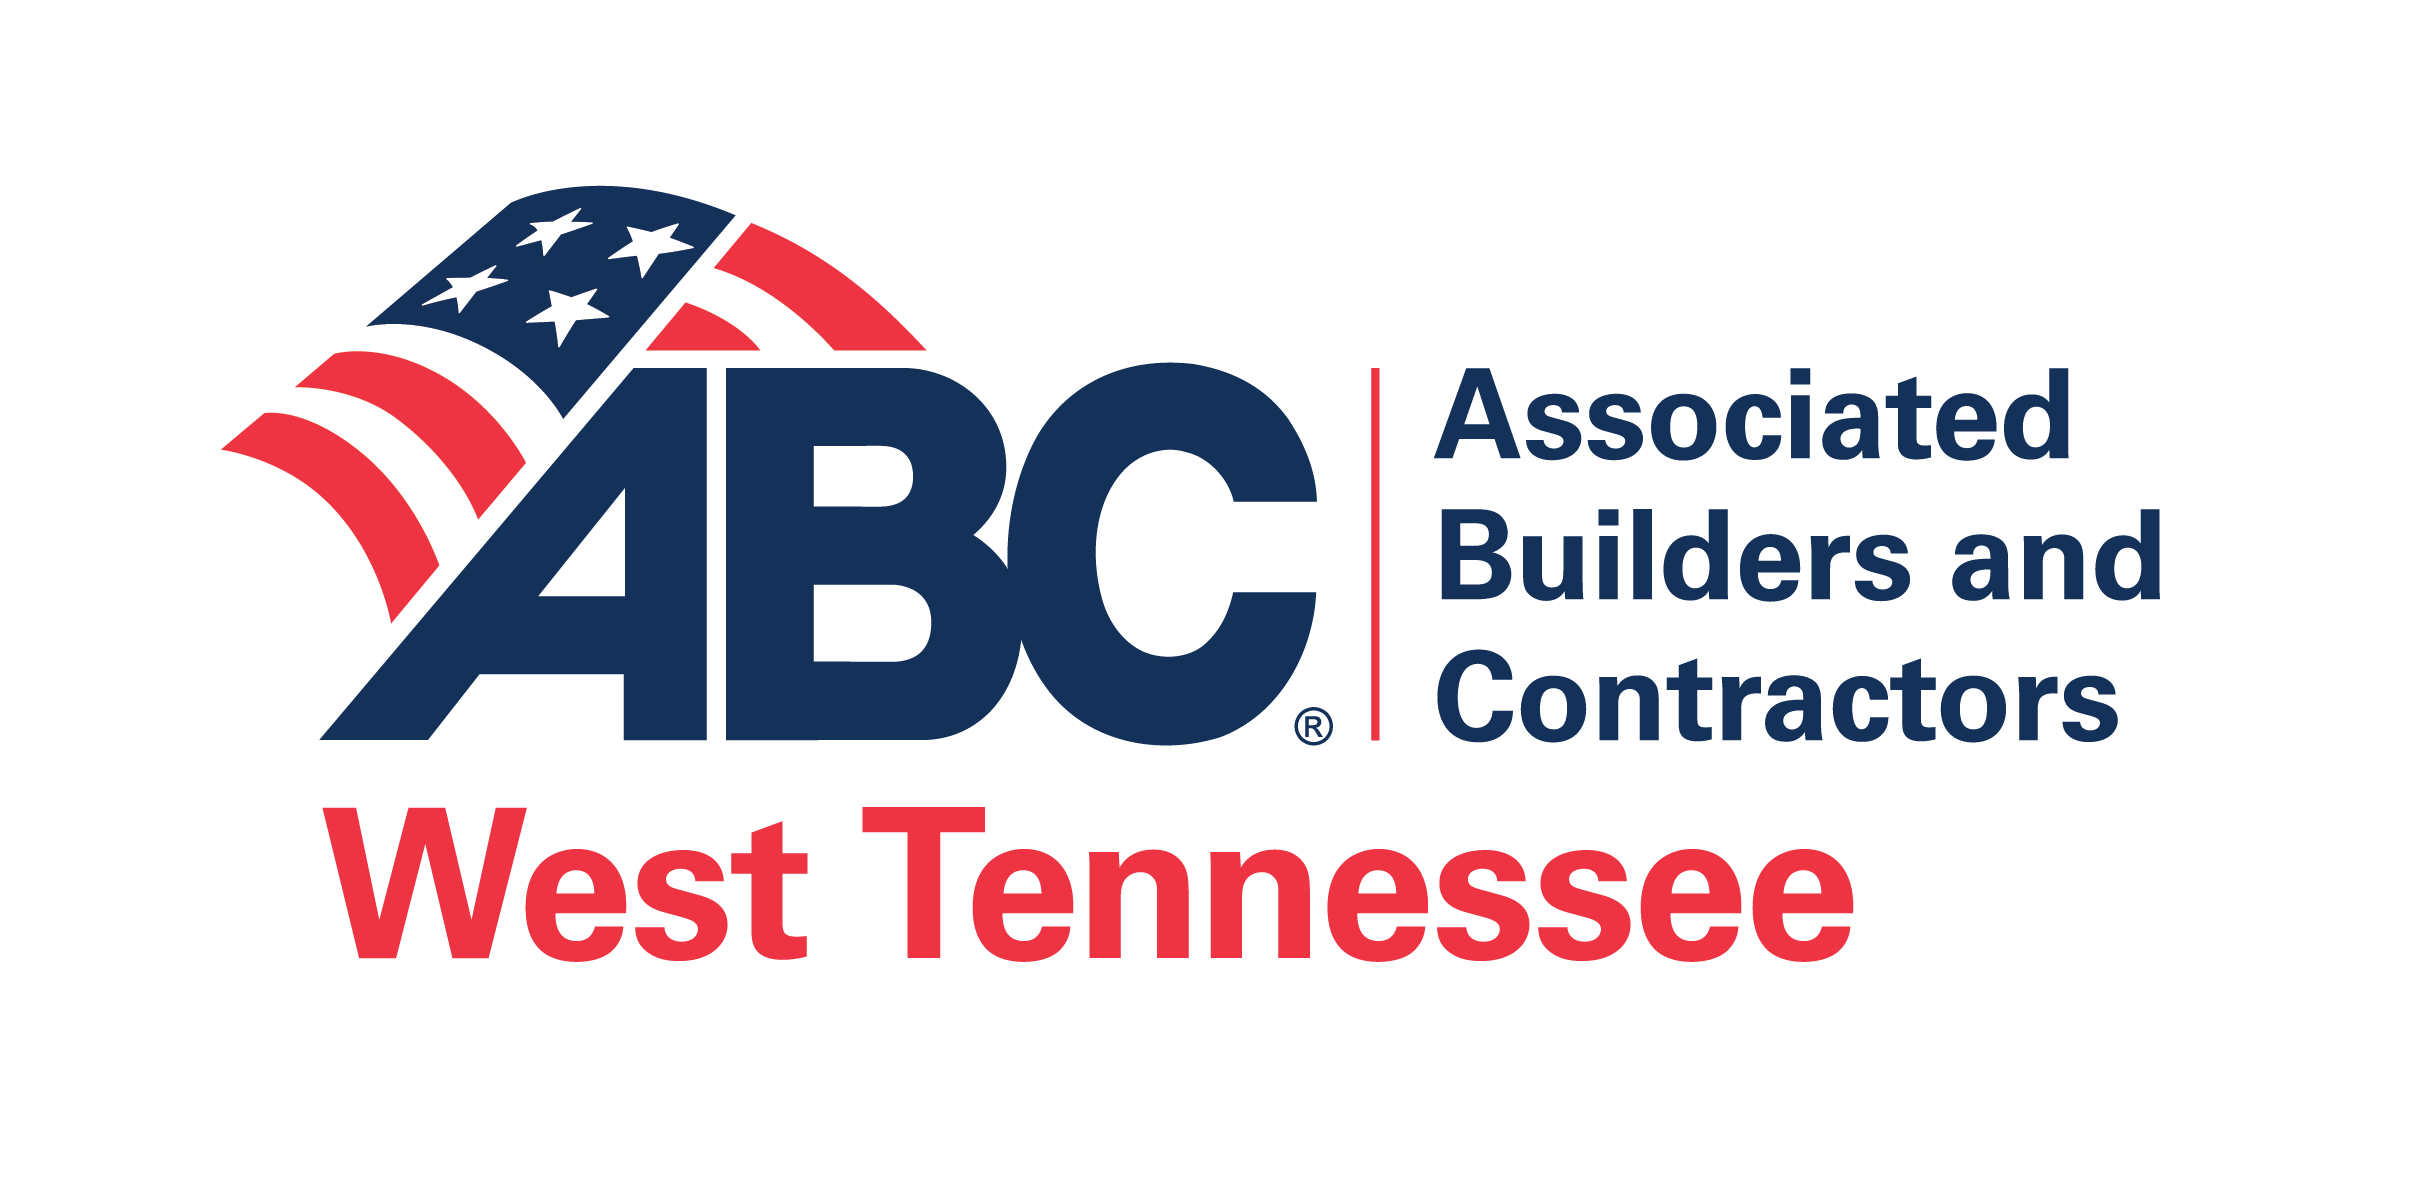 Associated Builders and Contractors - West Tennessee Chapter